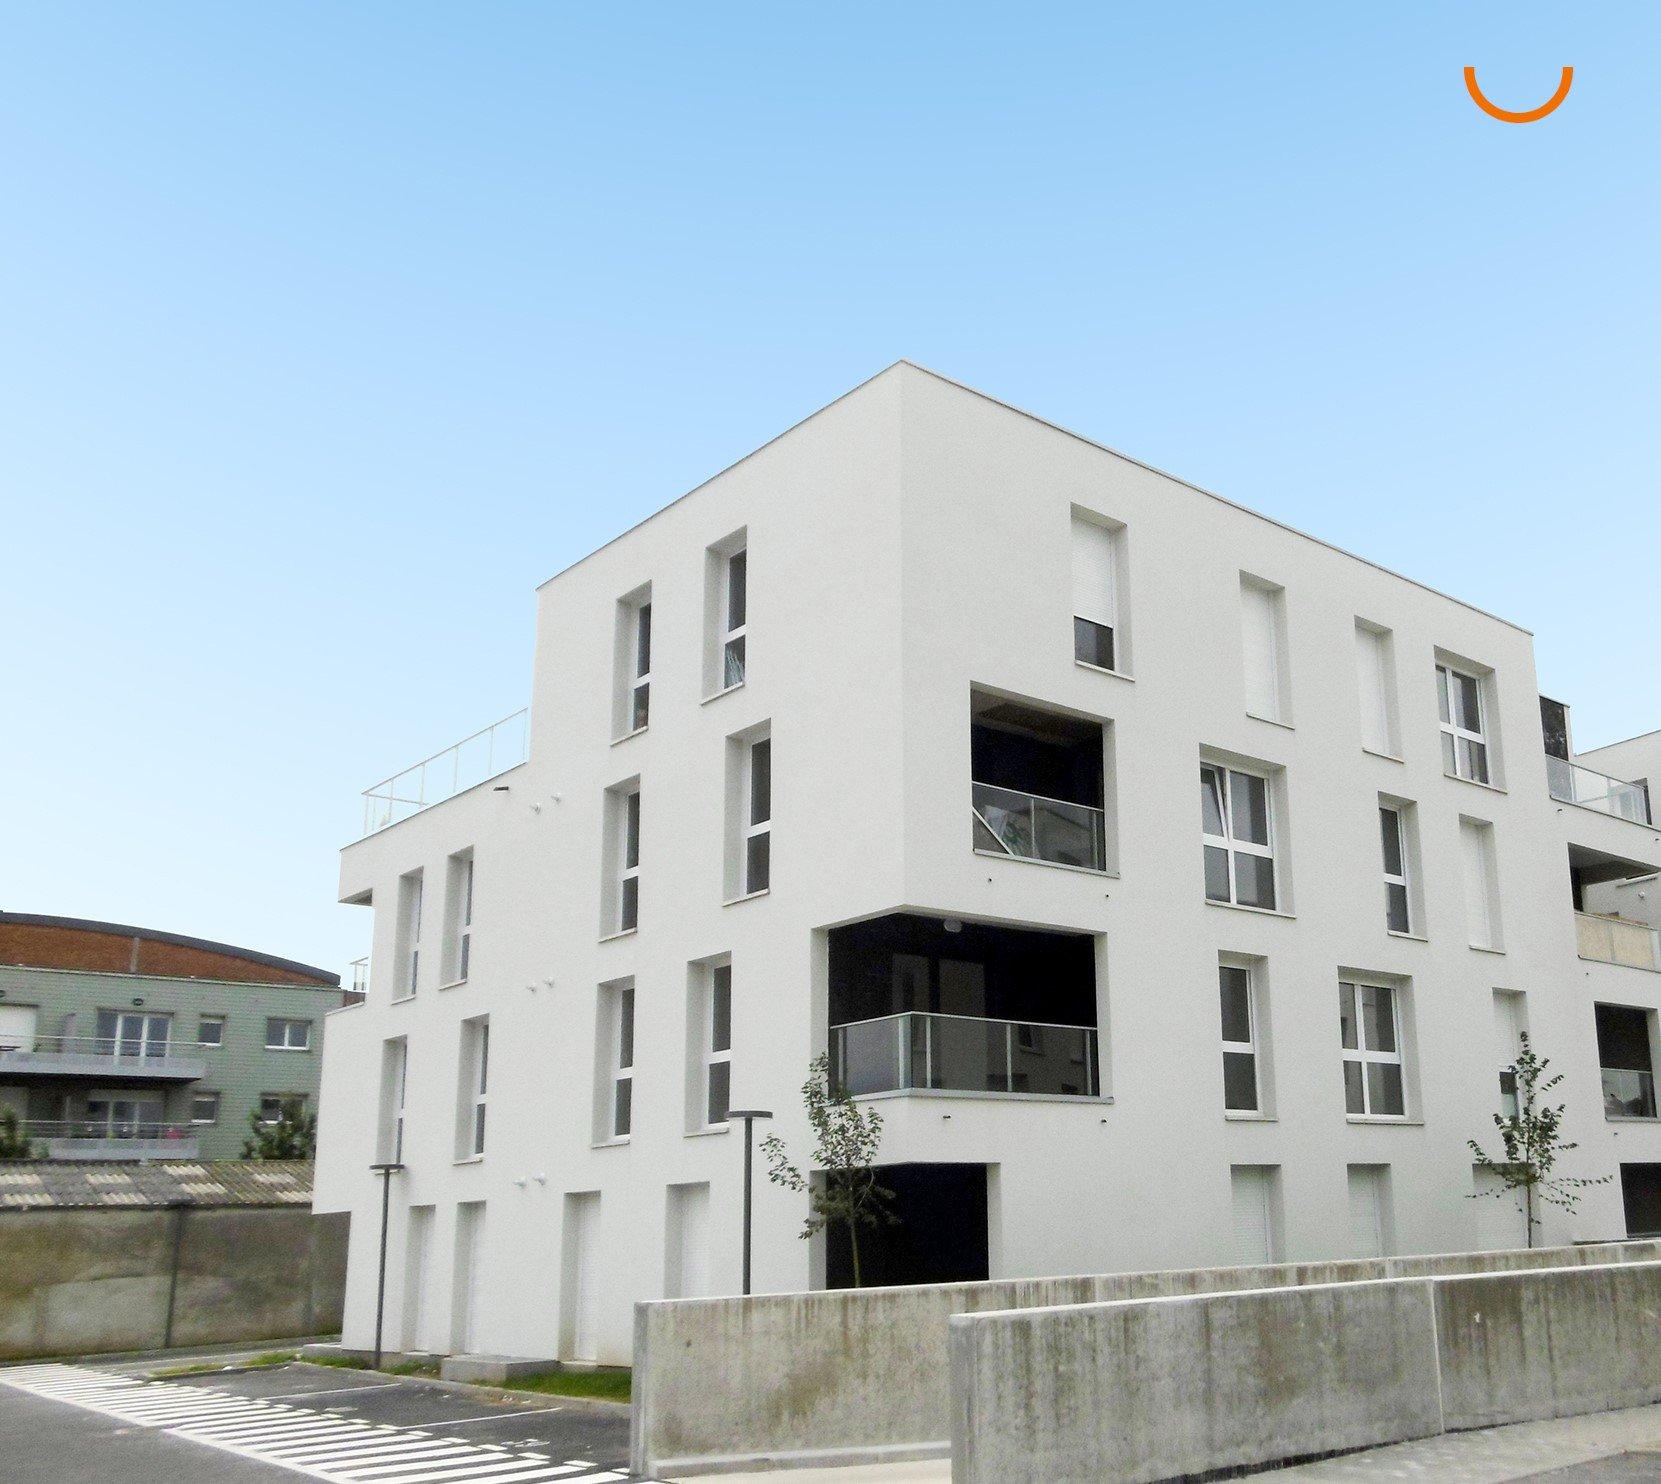 Appartement à louer, appartement, 62.5m², Faches-Thumesnil